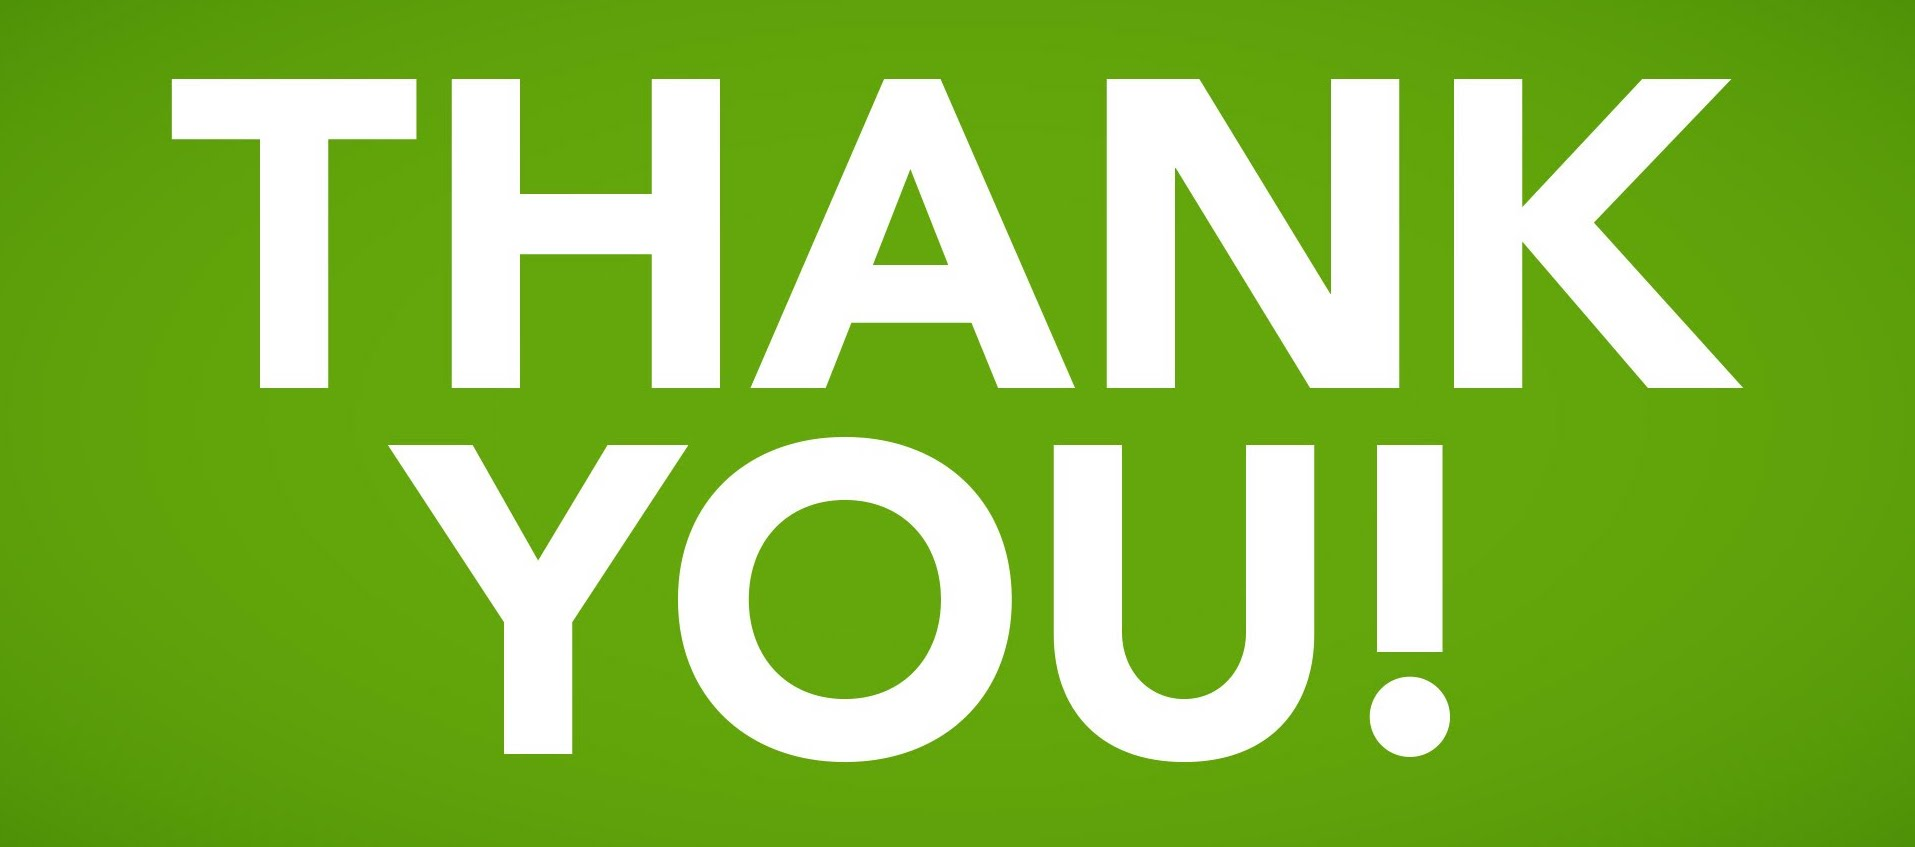 thank-you-green-large